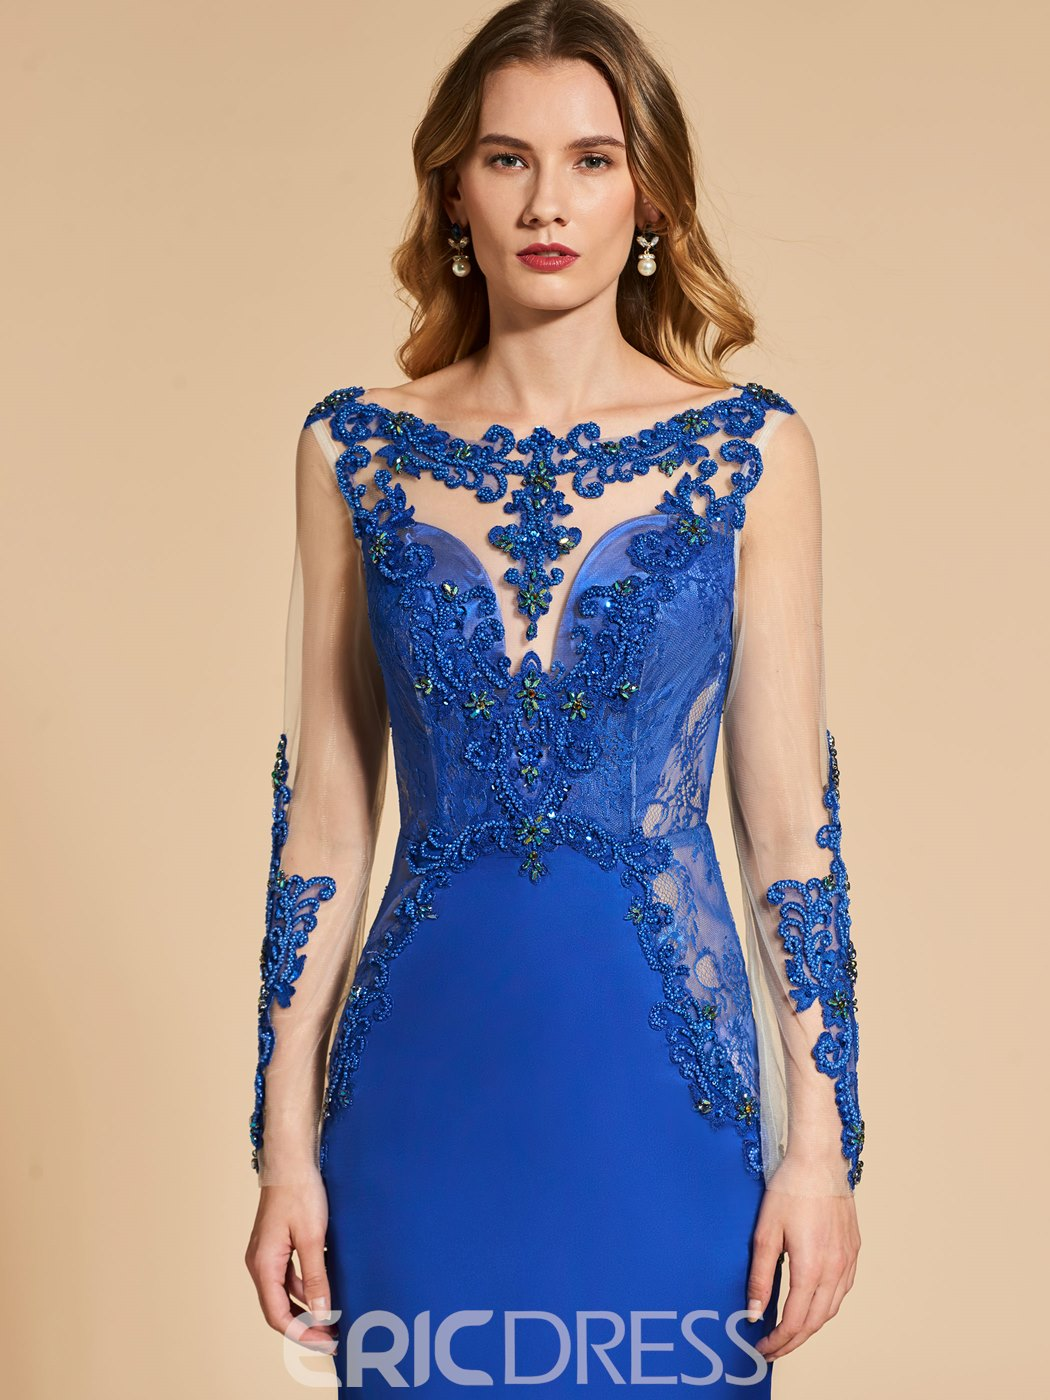 35a9e9fa02c ... Ericdress Mermaid Applique Beaded Backless Evening Dress With Long  Sleeve ...